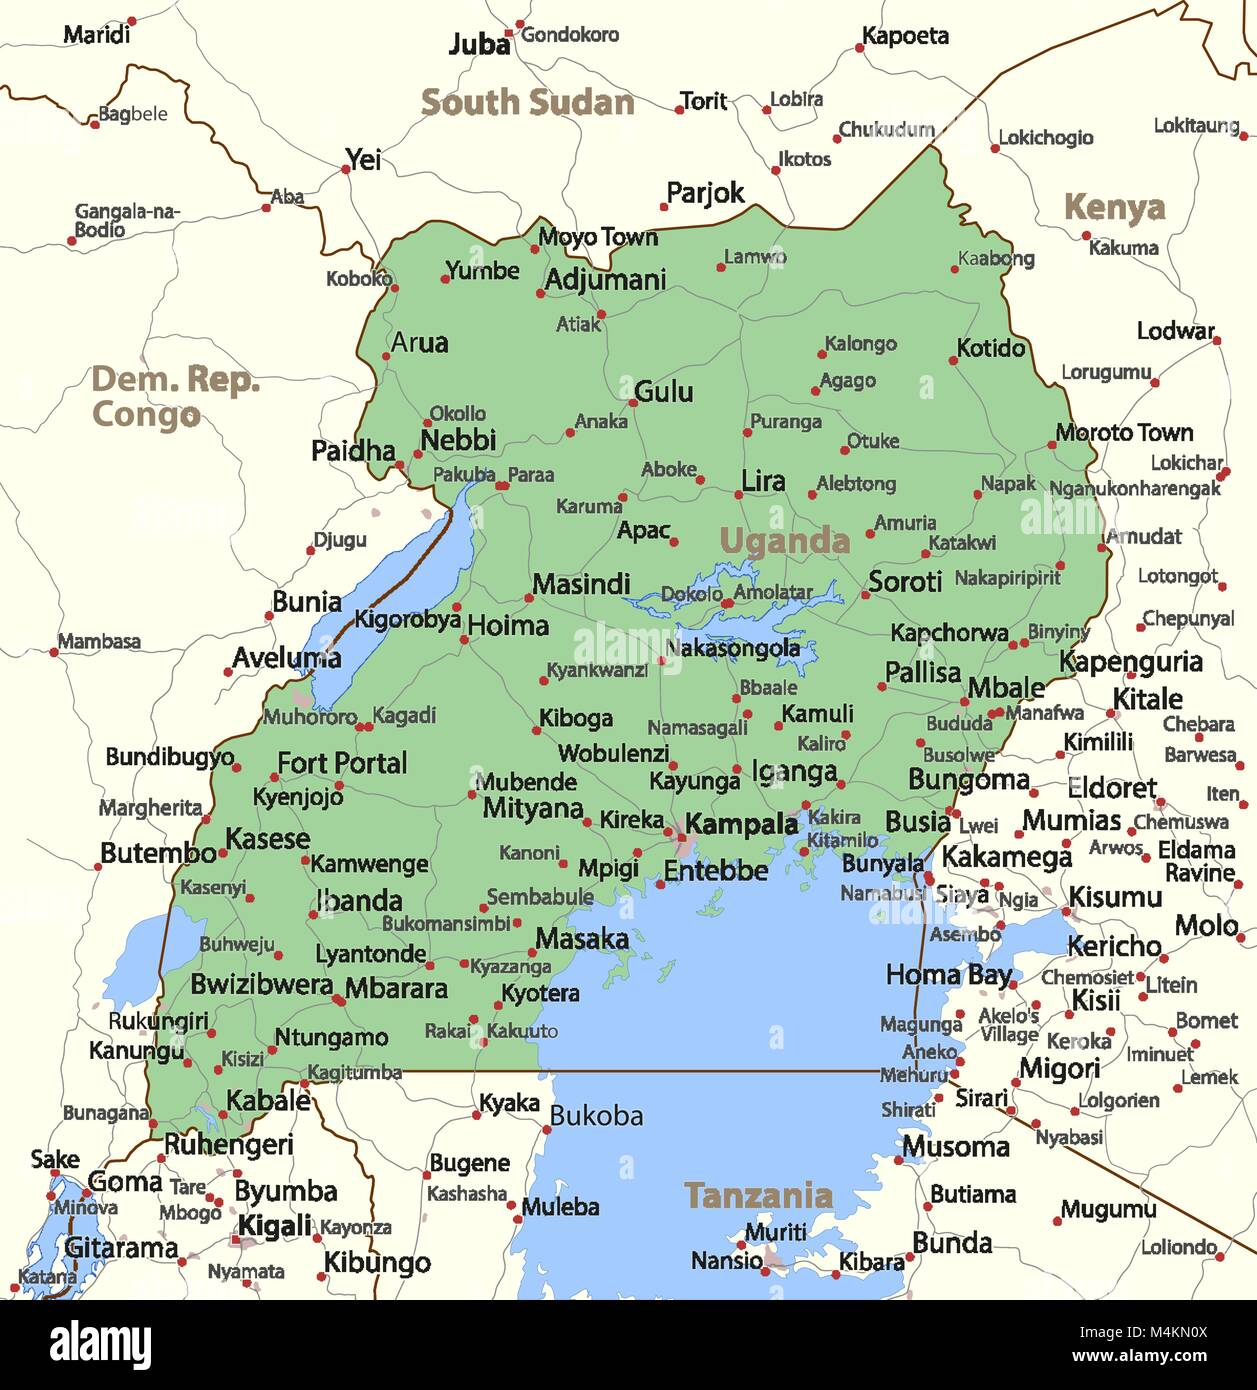 Outline map country uganda stock photos outline map country map of uganda shows country borders urban areas place names and roads gumiabroncs Choice Image